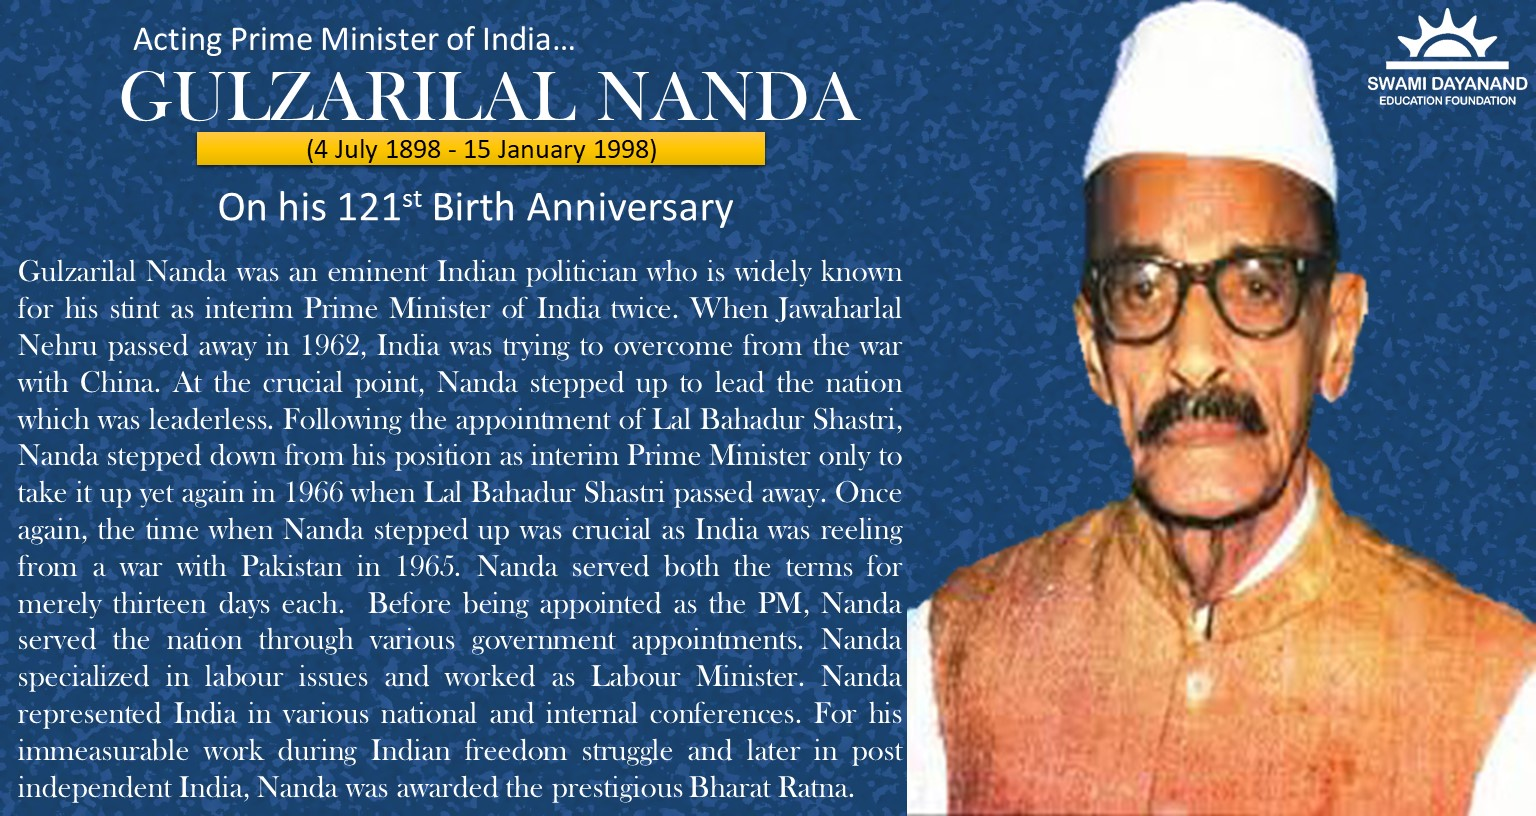 GULZARILAL NANDA  (4th July 1898 - 15th January 1998)